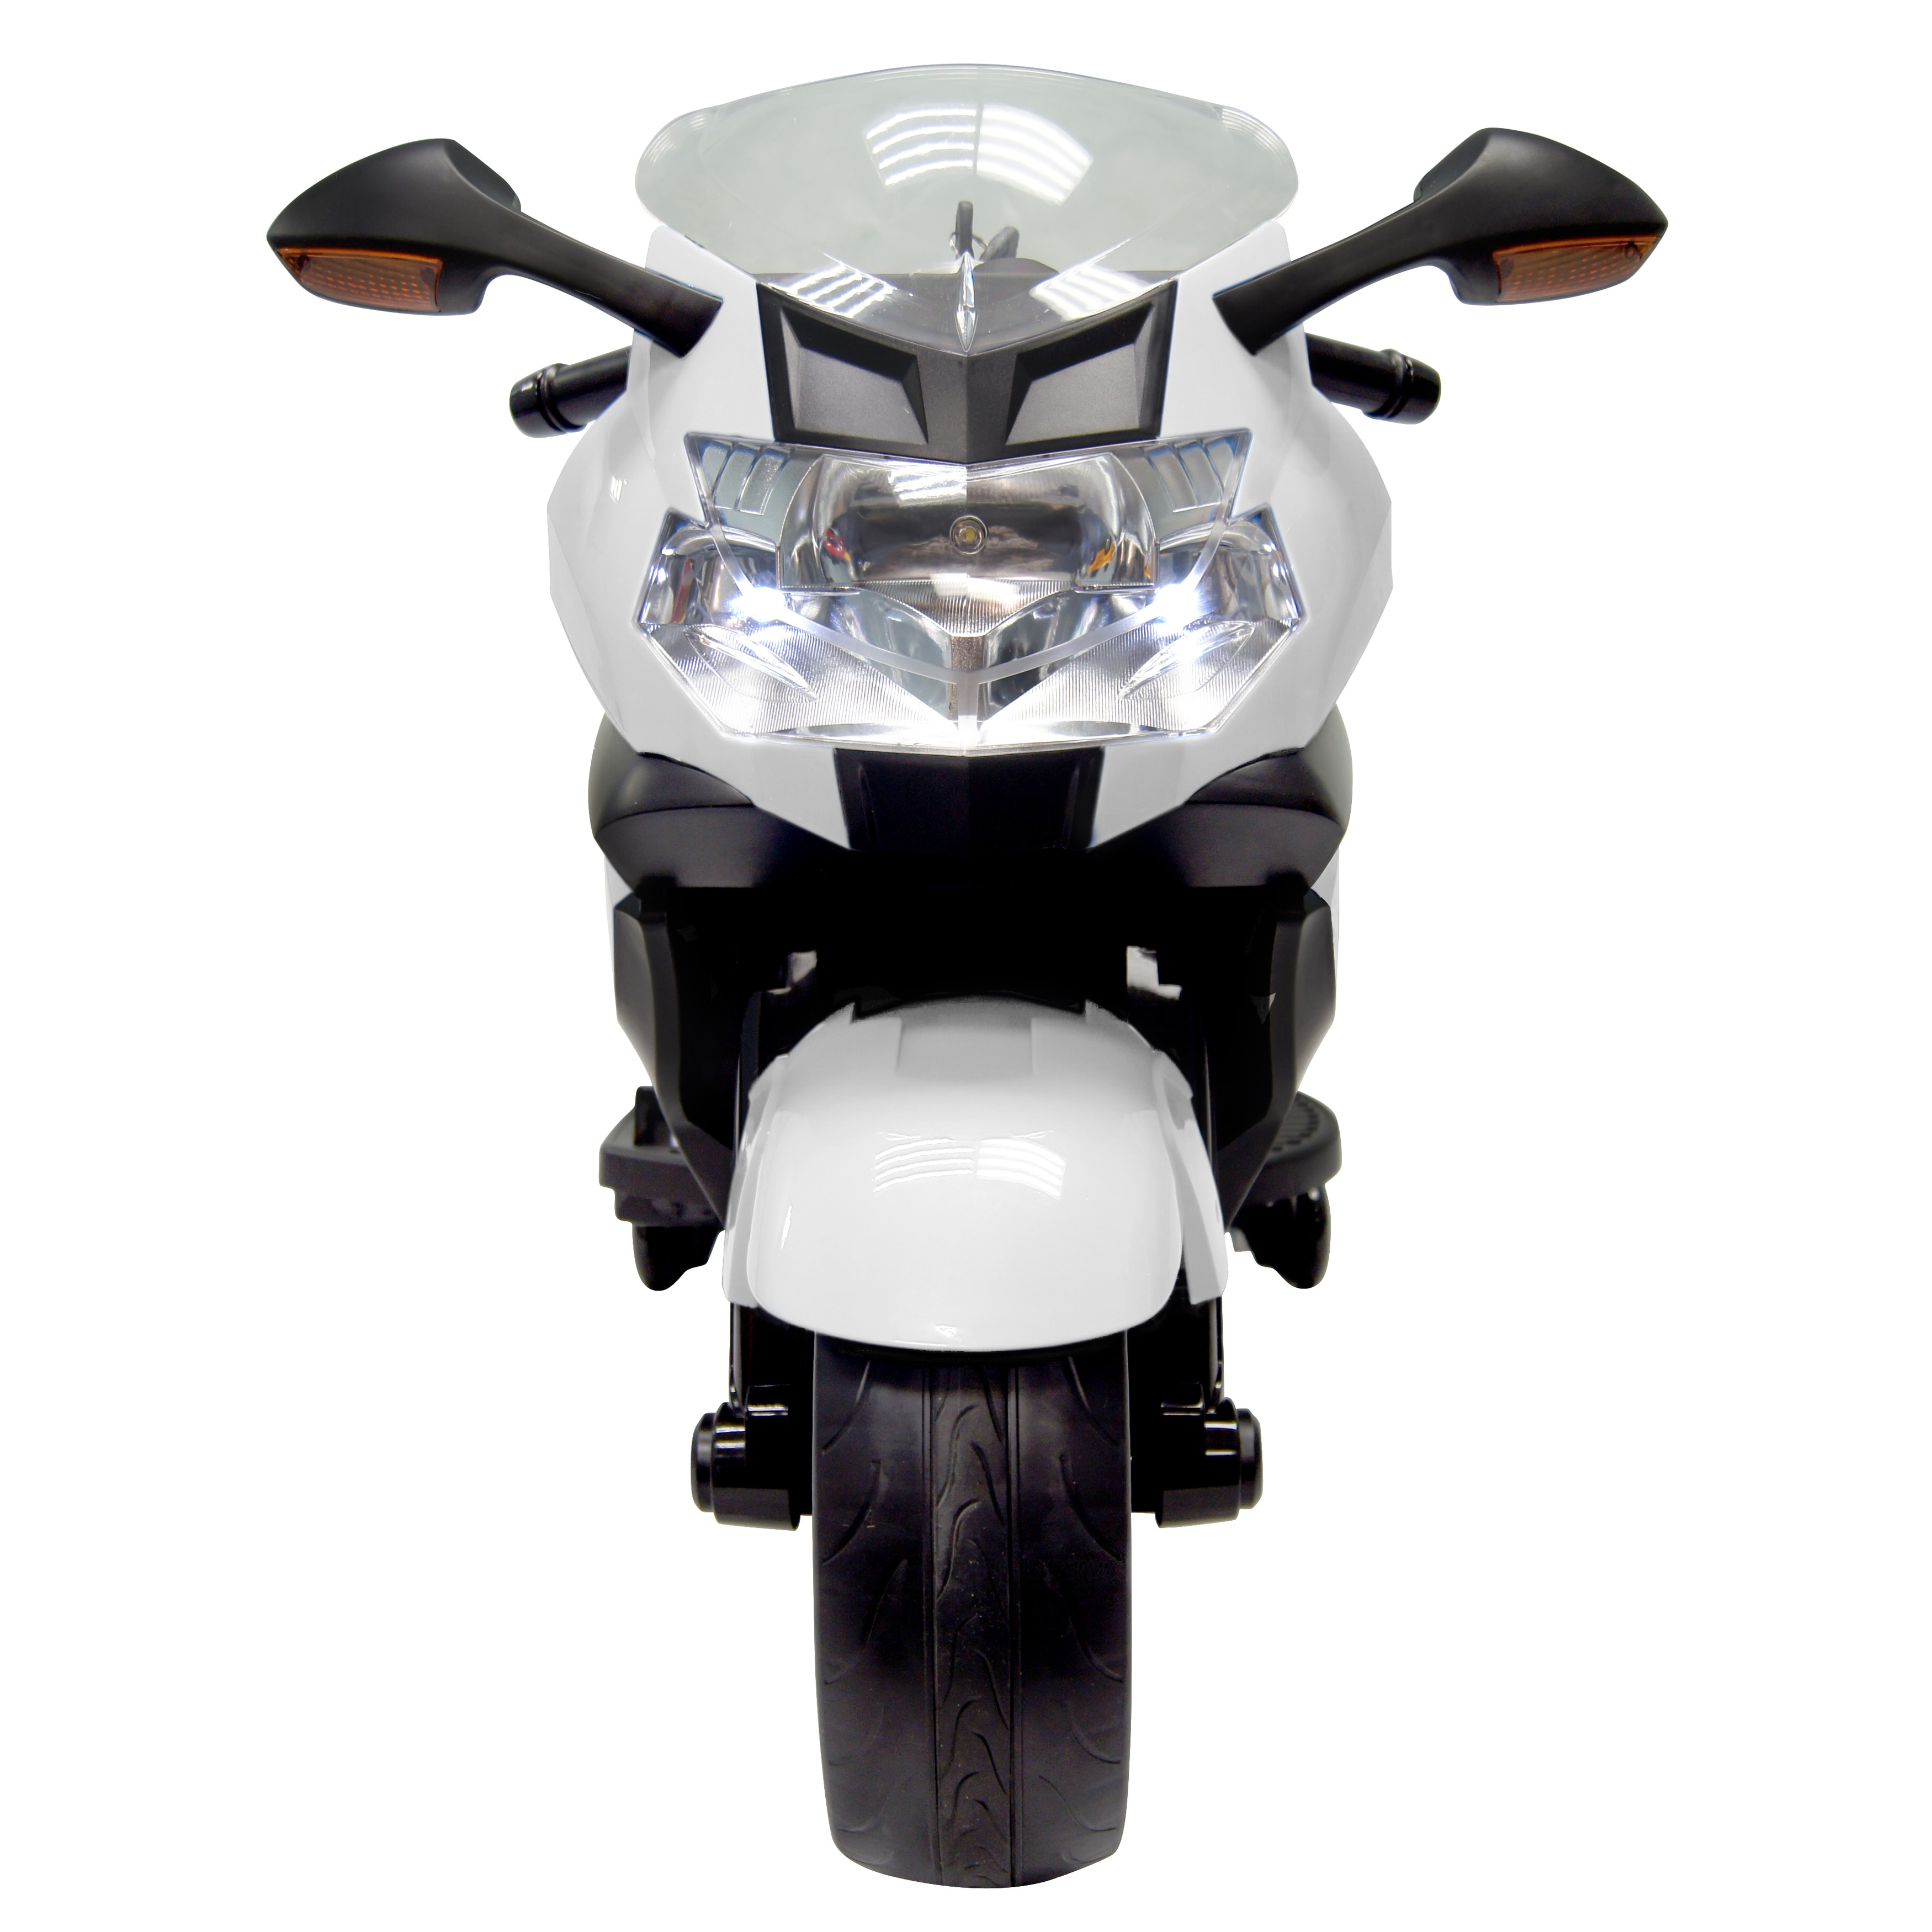 Shop Best Ride On Cars BMW 12V Ride On Motorcycle, White - Free ...